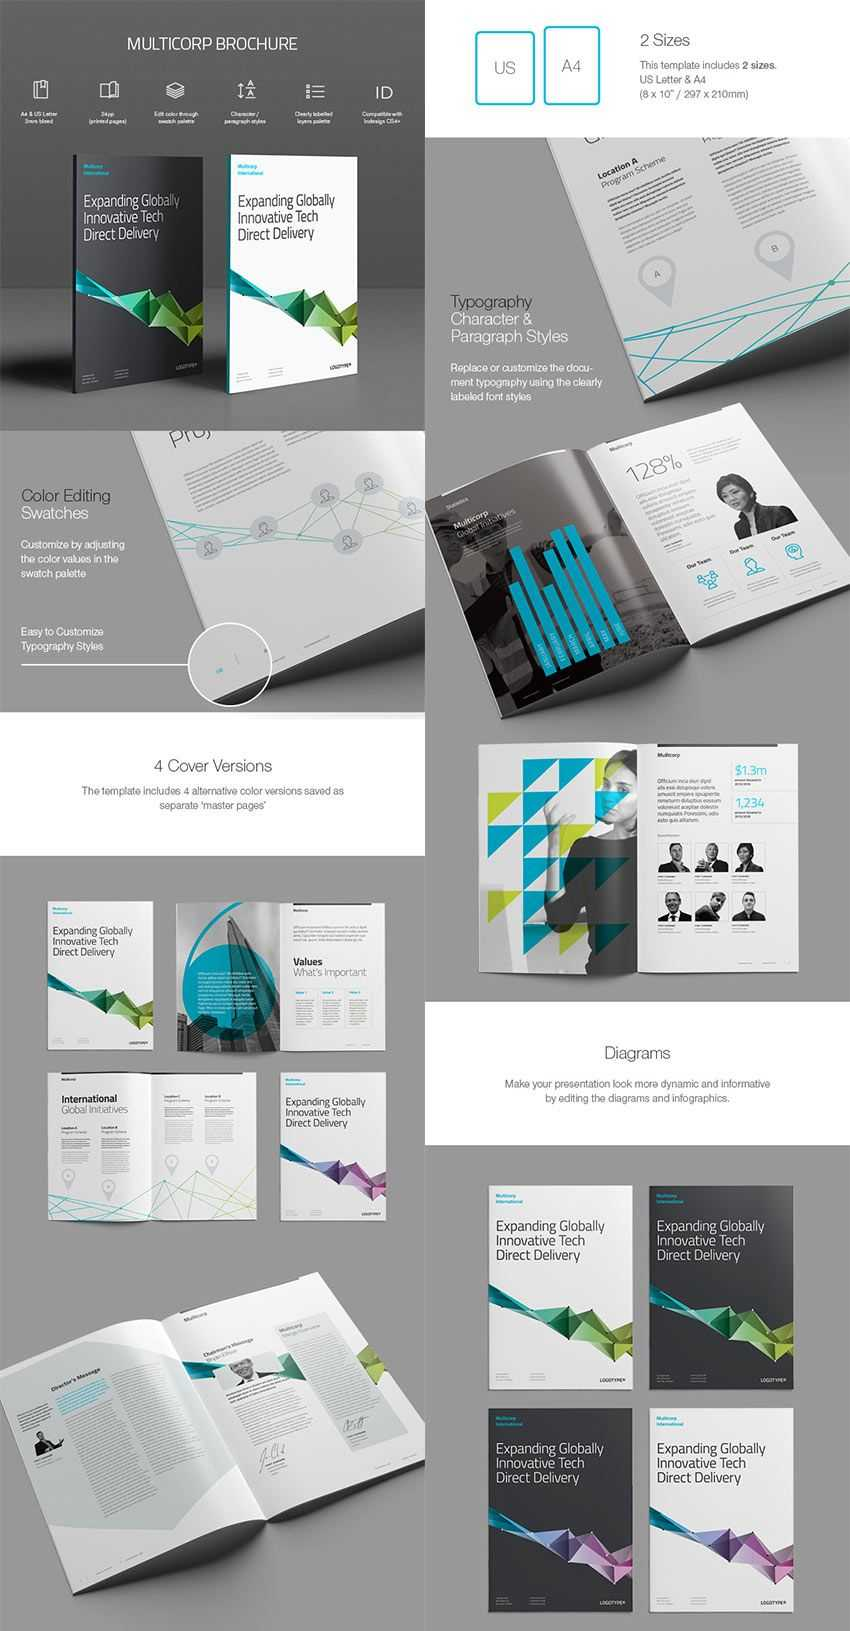 005 Indesign Brochure Template Free Stirring Ideas Corporate with regard to Adobe Indesign Brochure Templates